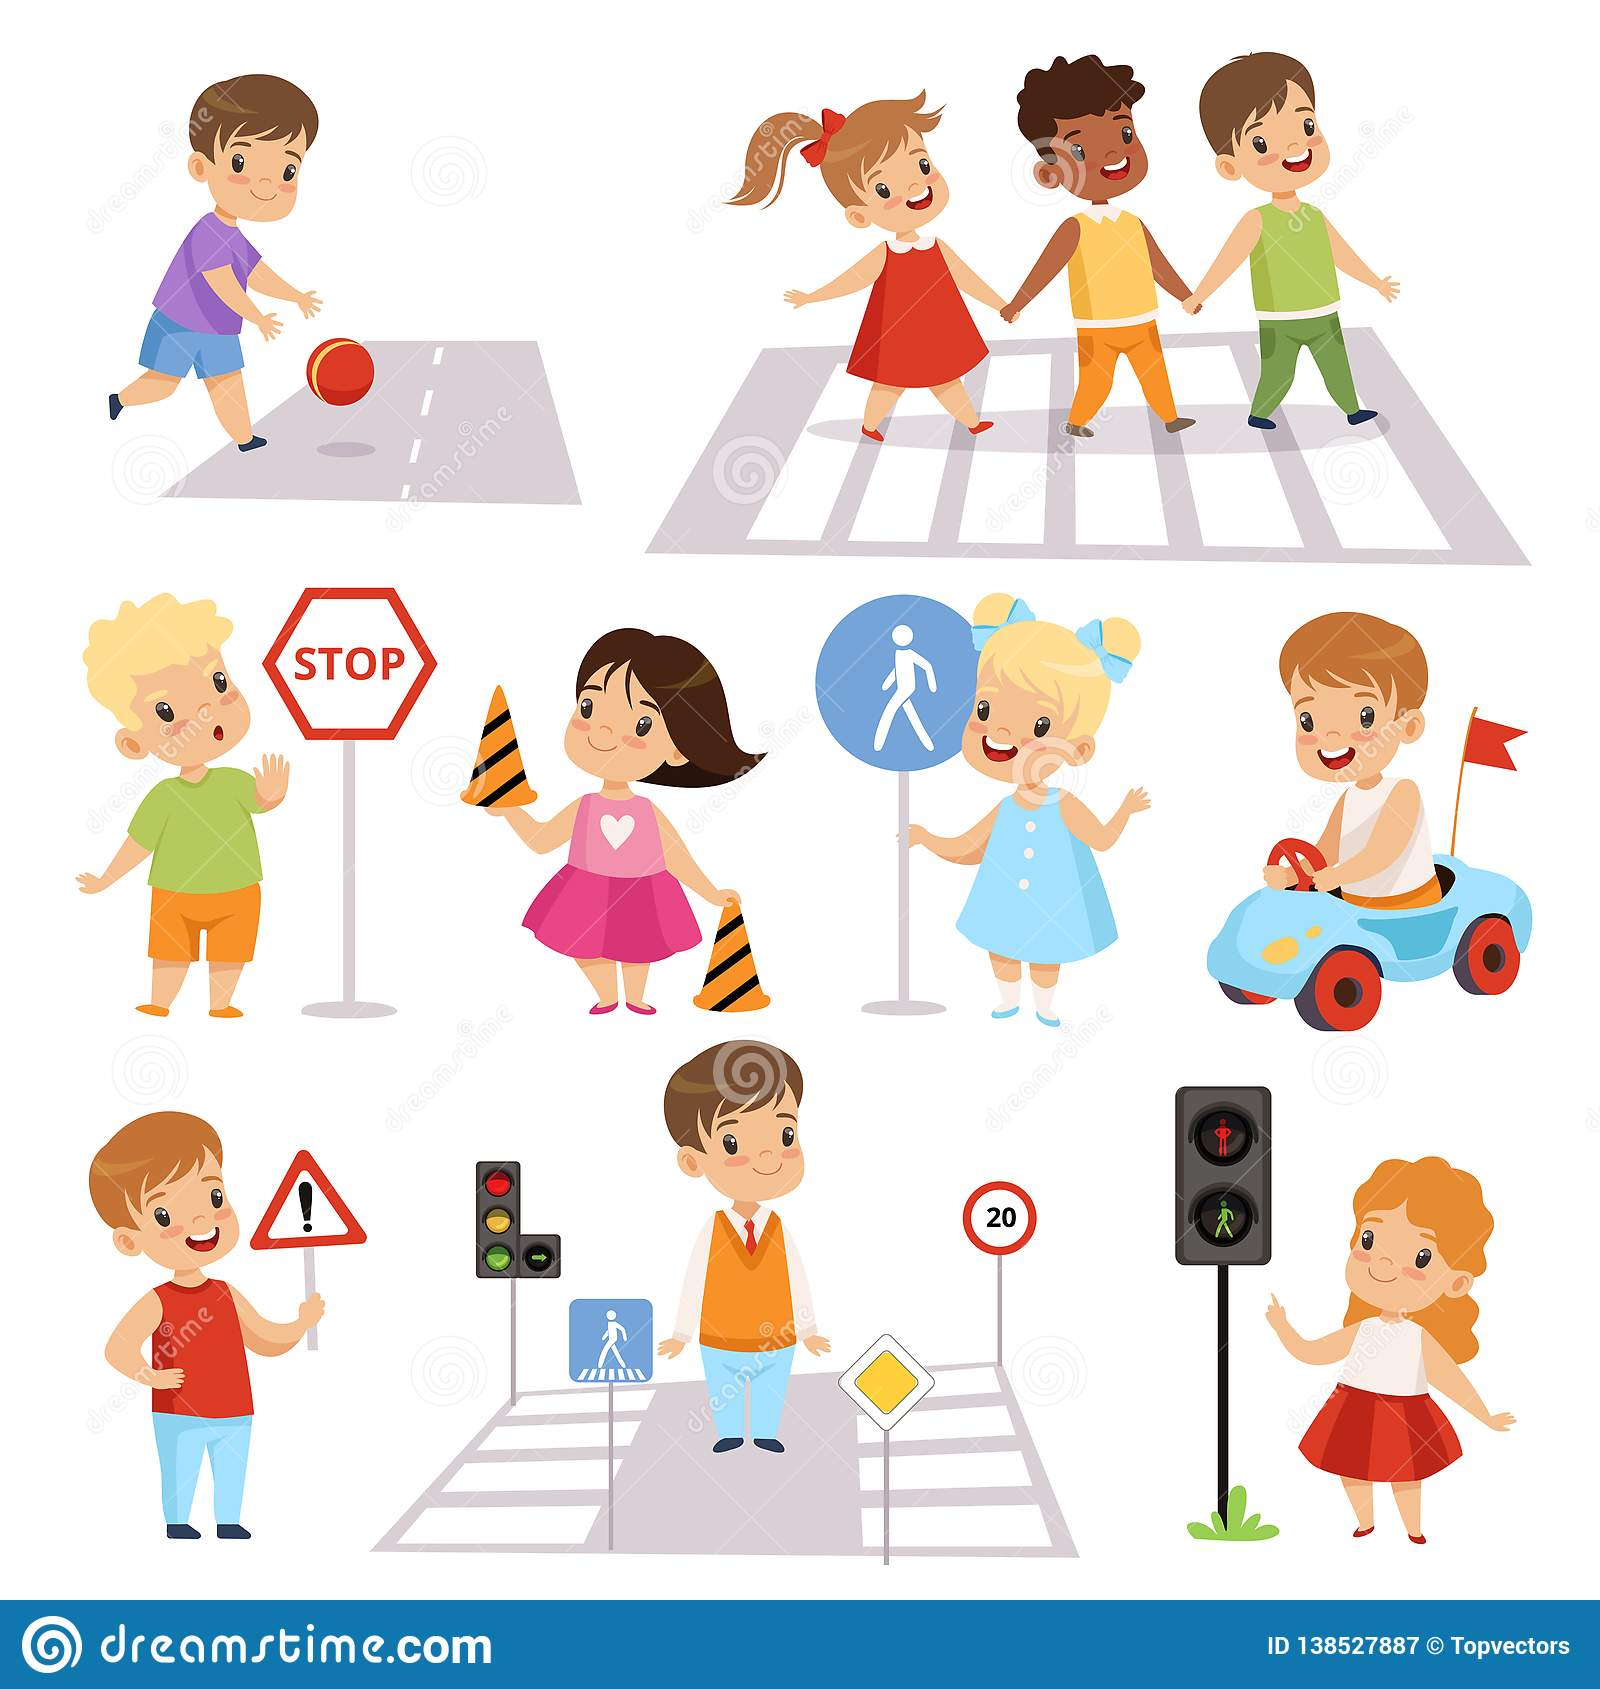 Cute Smiling Boys And Girls Crossing Streets And Learning